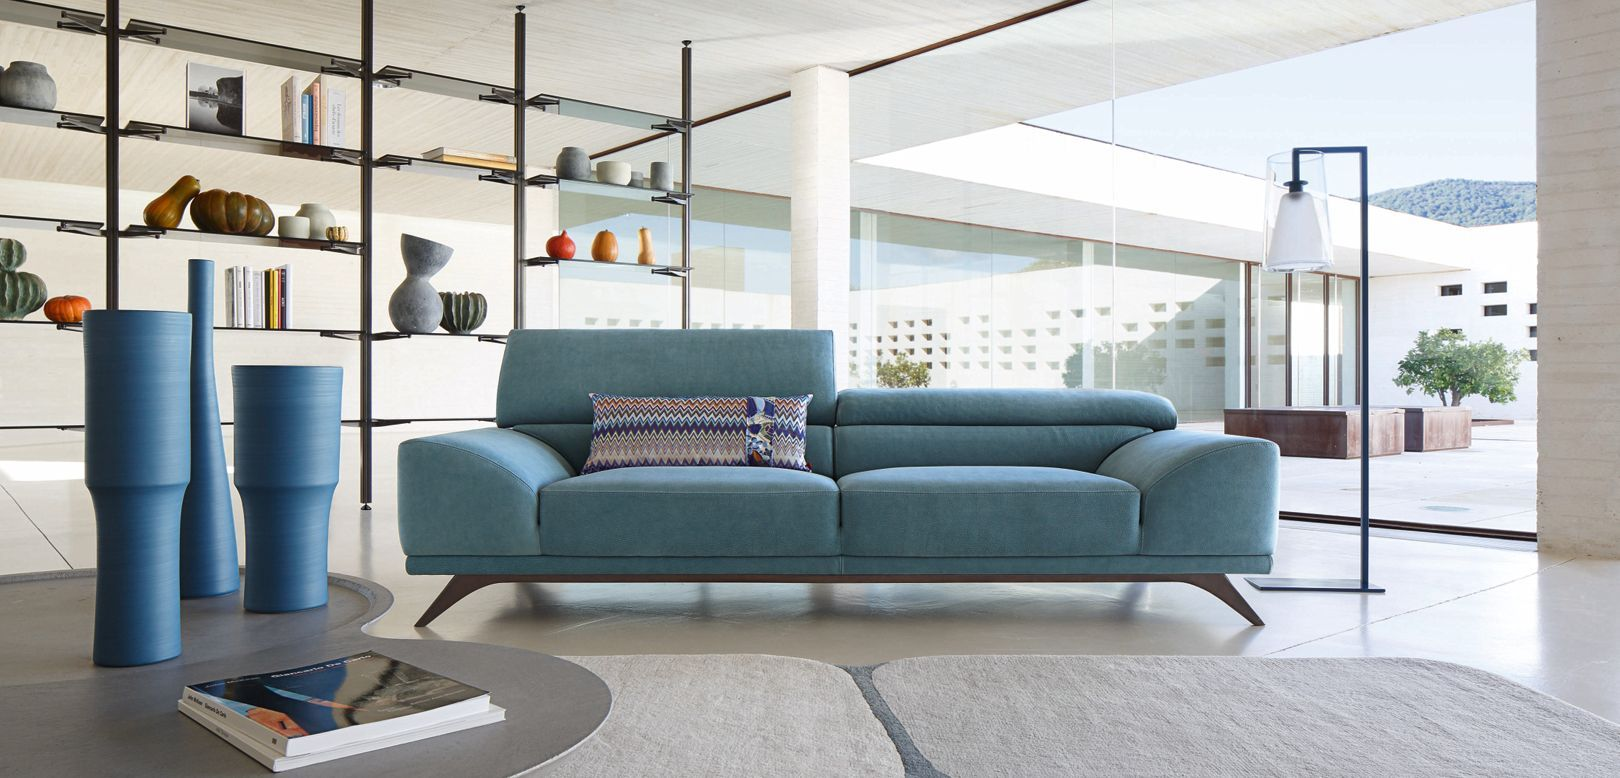 This sofa looks amazing roche bobois huge three seats - Roche bobois canape cuir ...